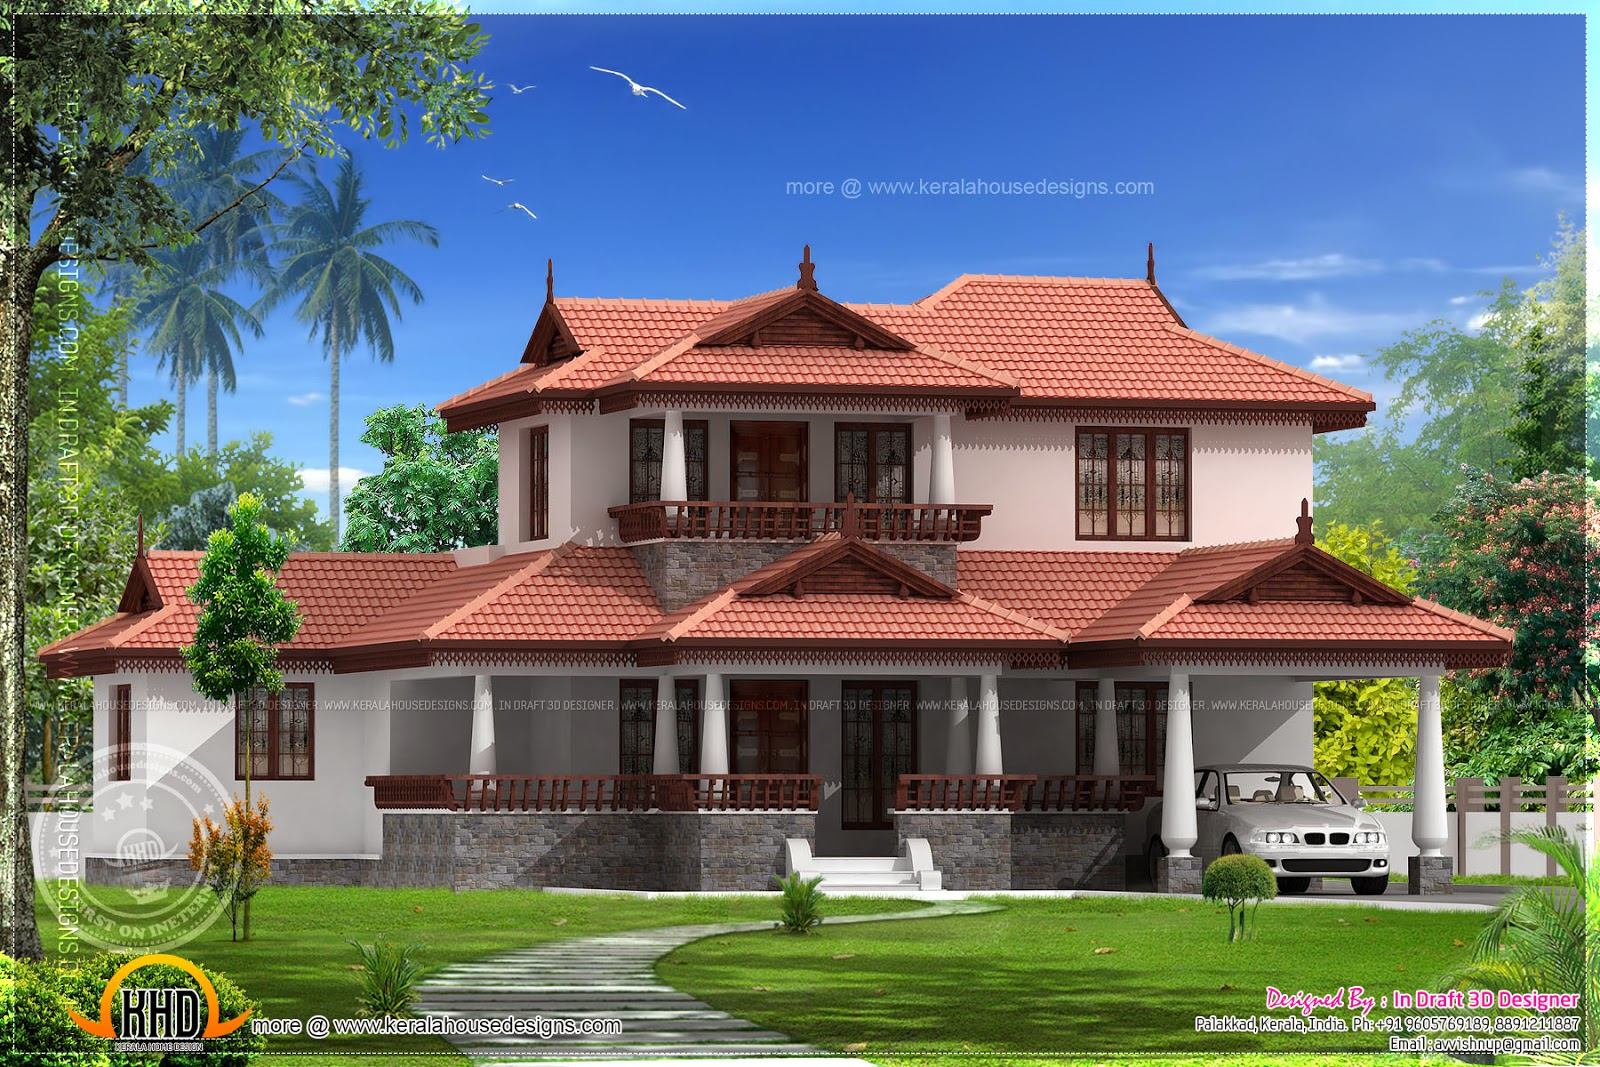 3 bedroom kerala model home elevation kerala home design for Kerala home style 3 bedroom